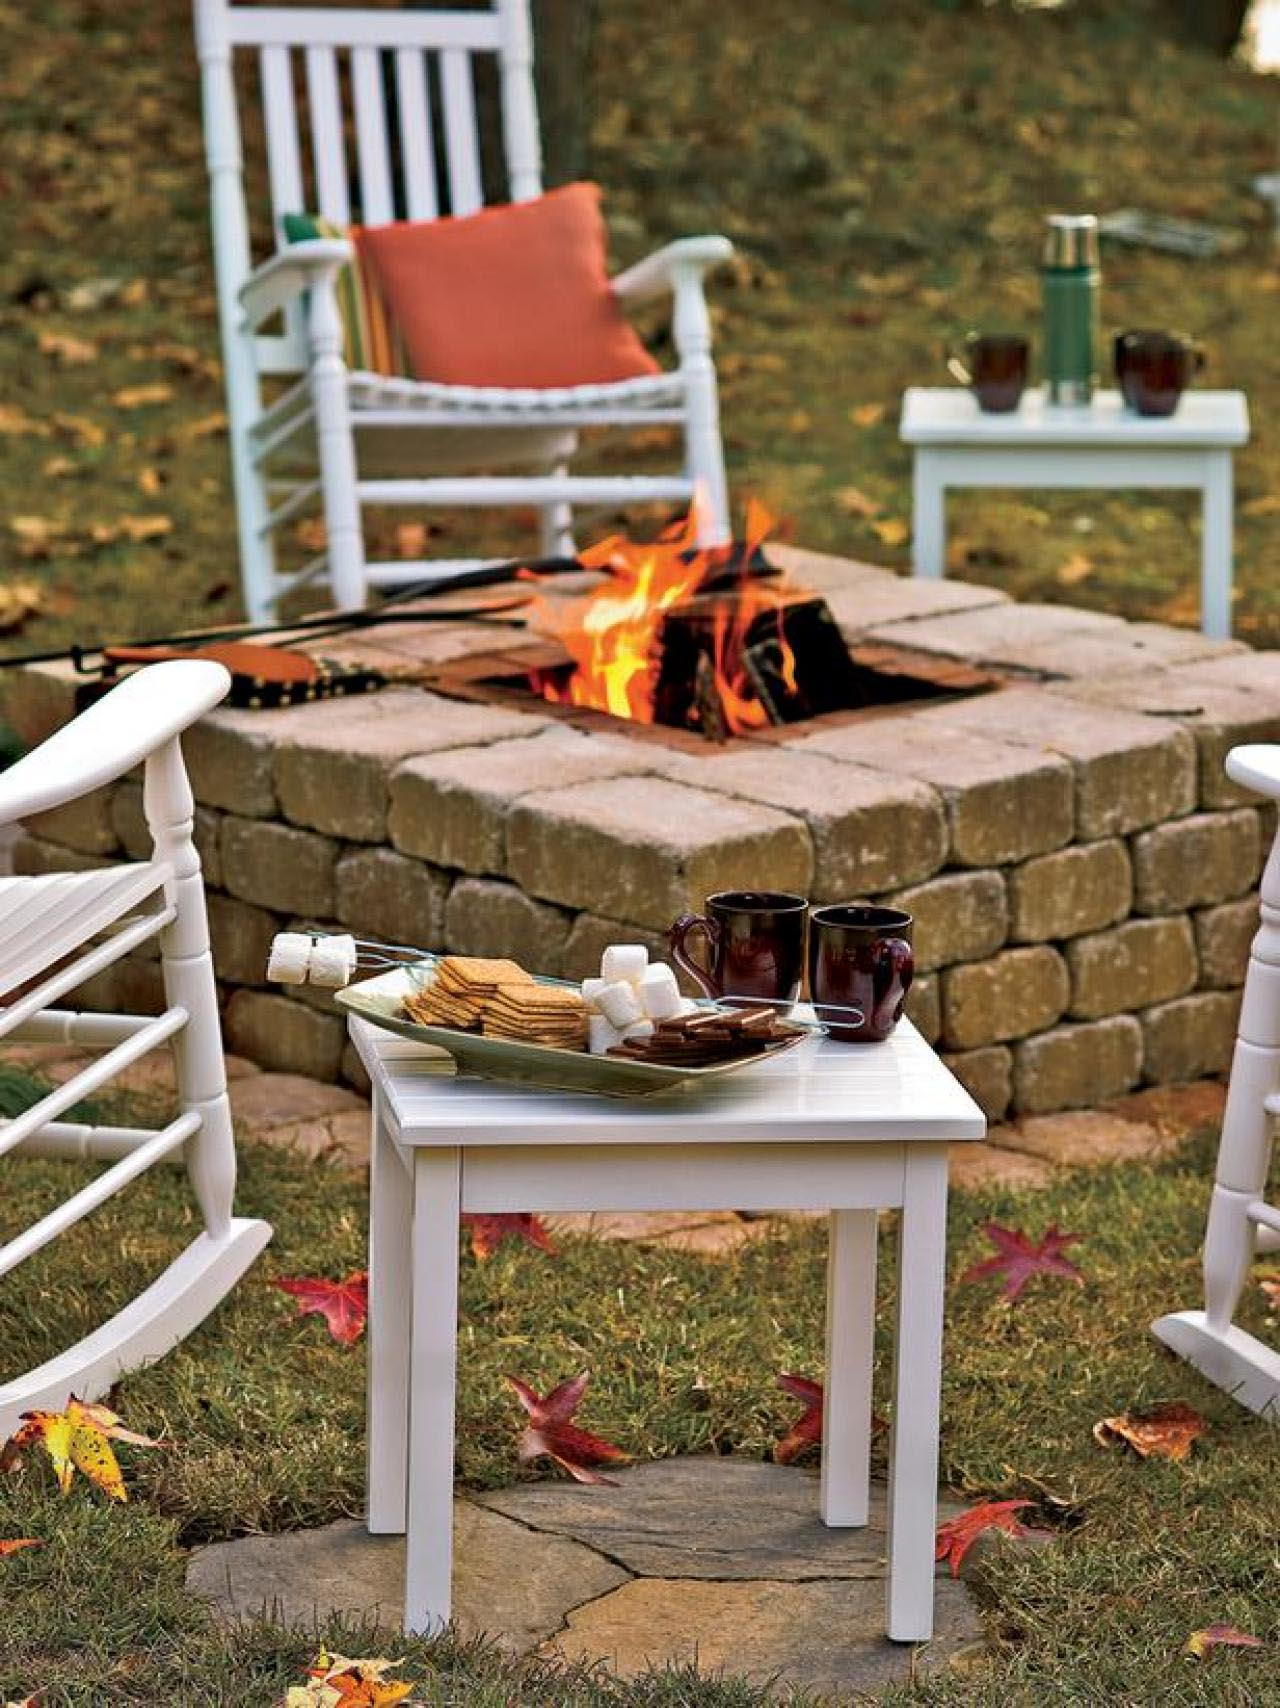 Build Dig Sunken Fire Pit